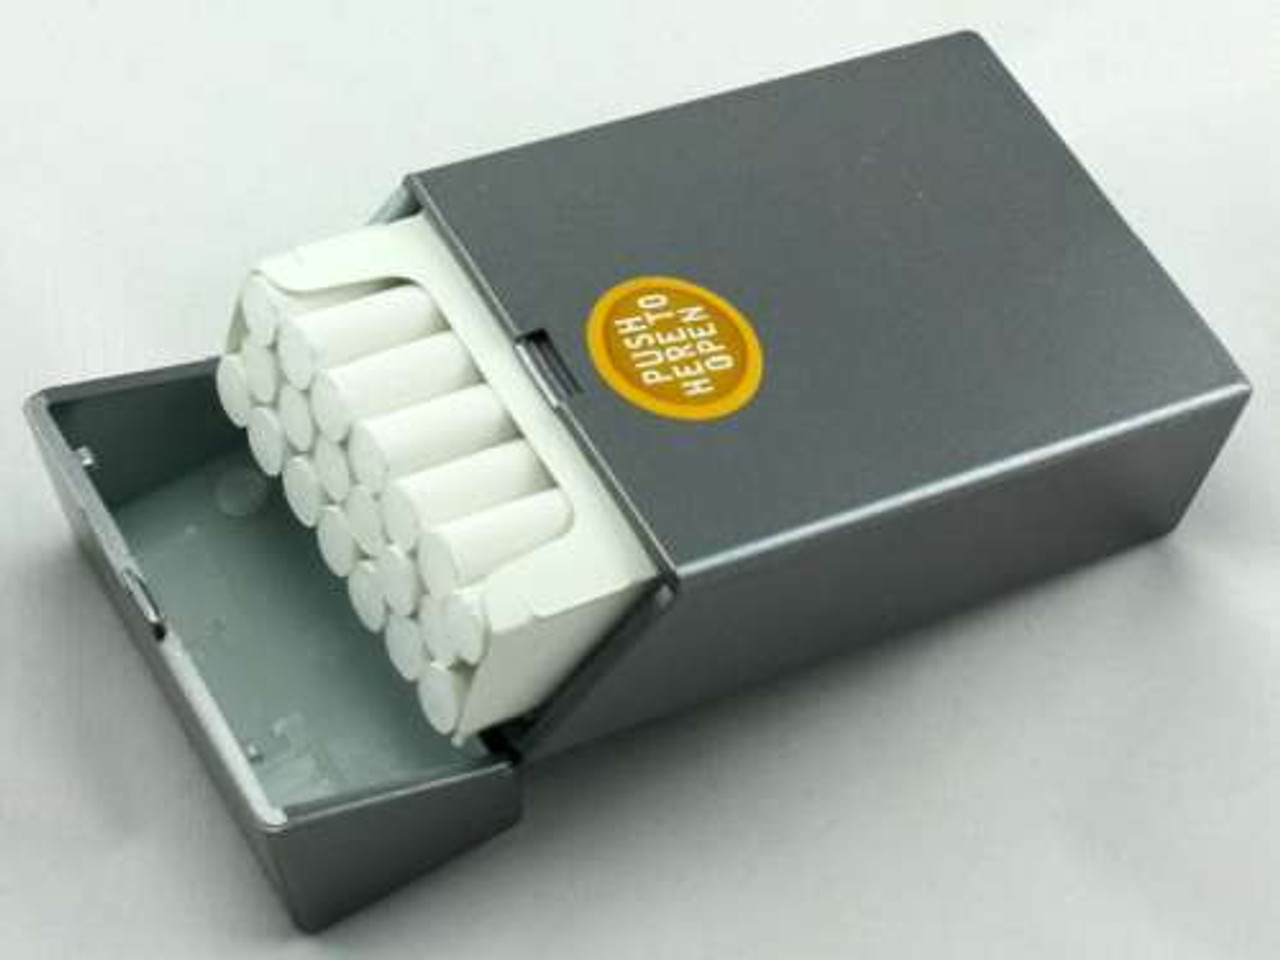 Charcoal Bay Cigarette Pack Holder